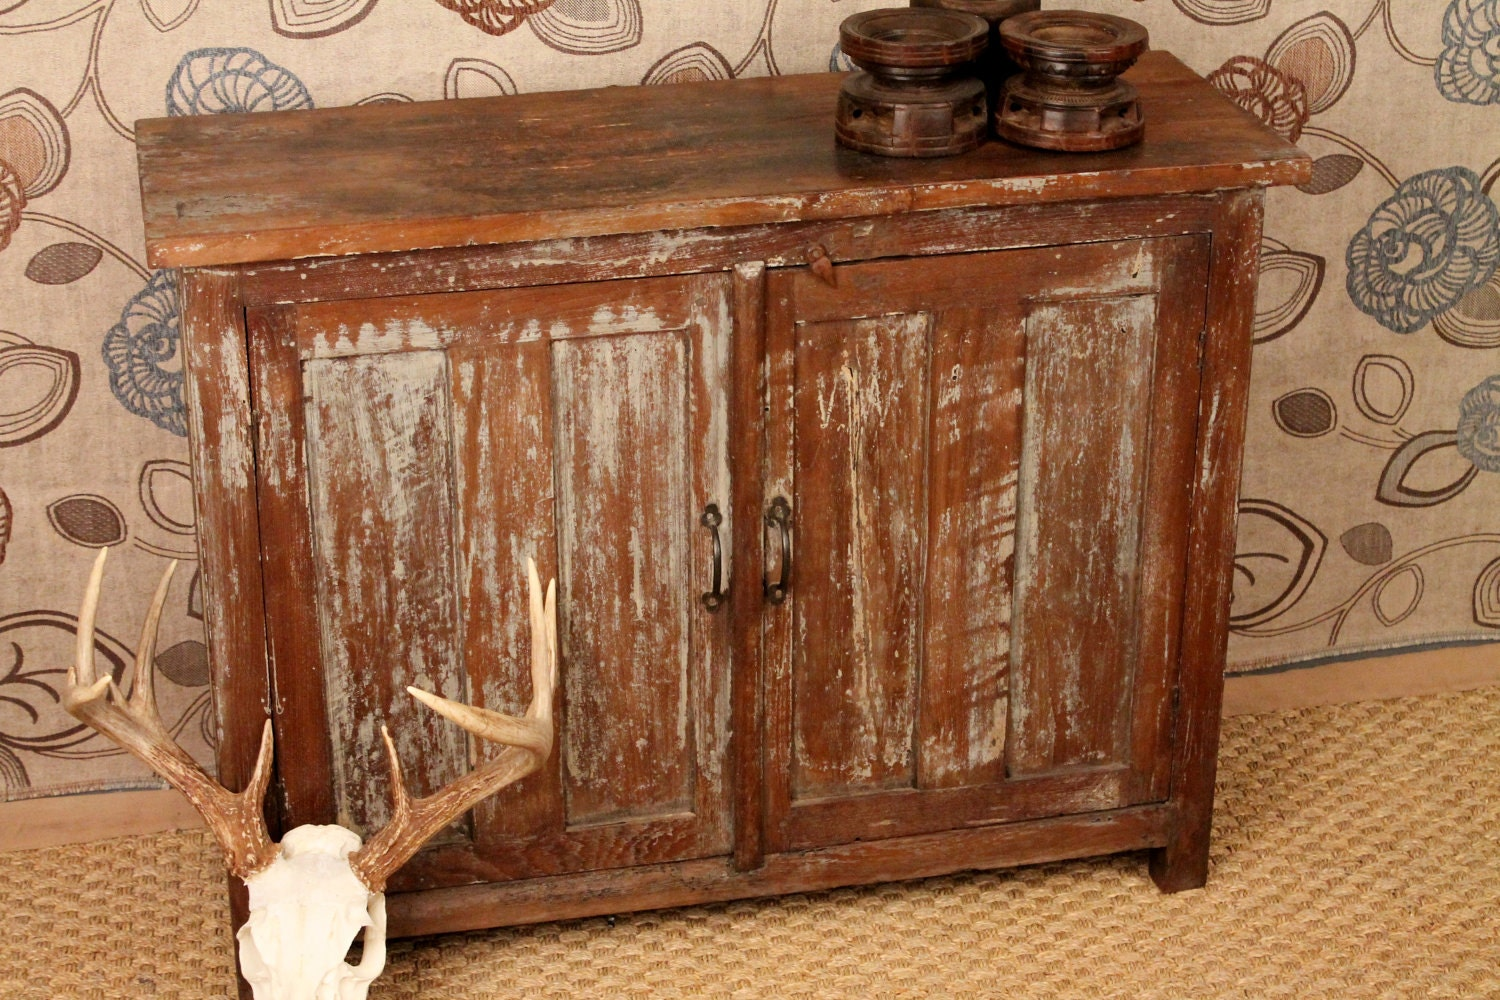 Antique Rustic Distressed Cabinet - hammerandhandimports